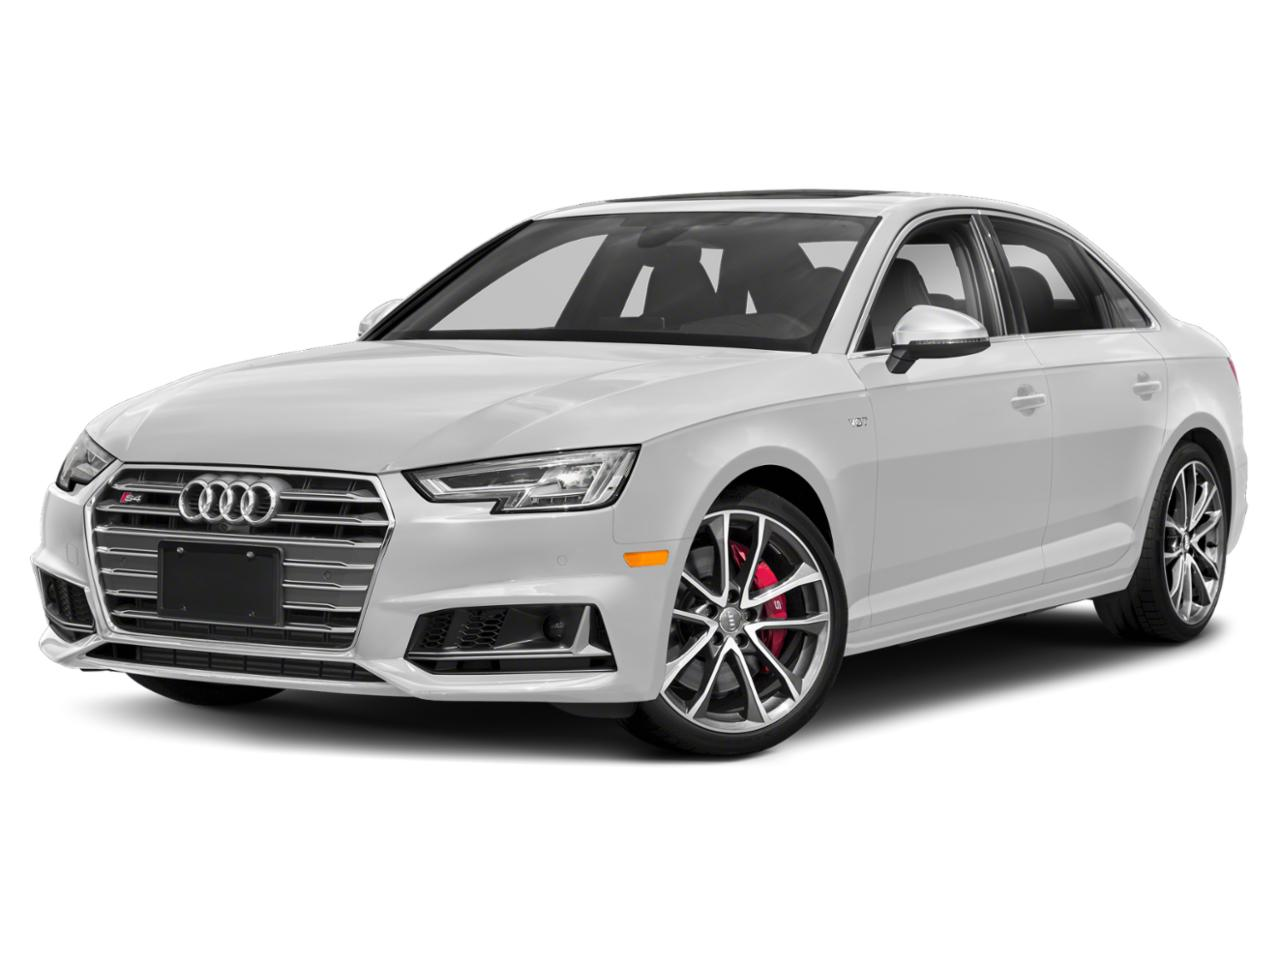 2018 Audi S4 Vehicle Photo in Frederick, MD 21704